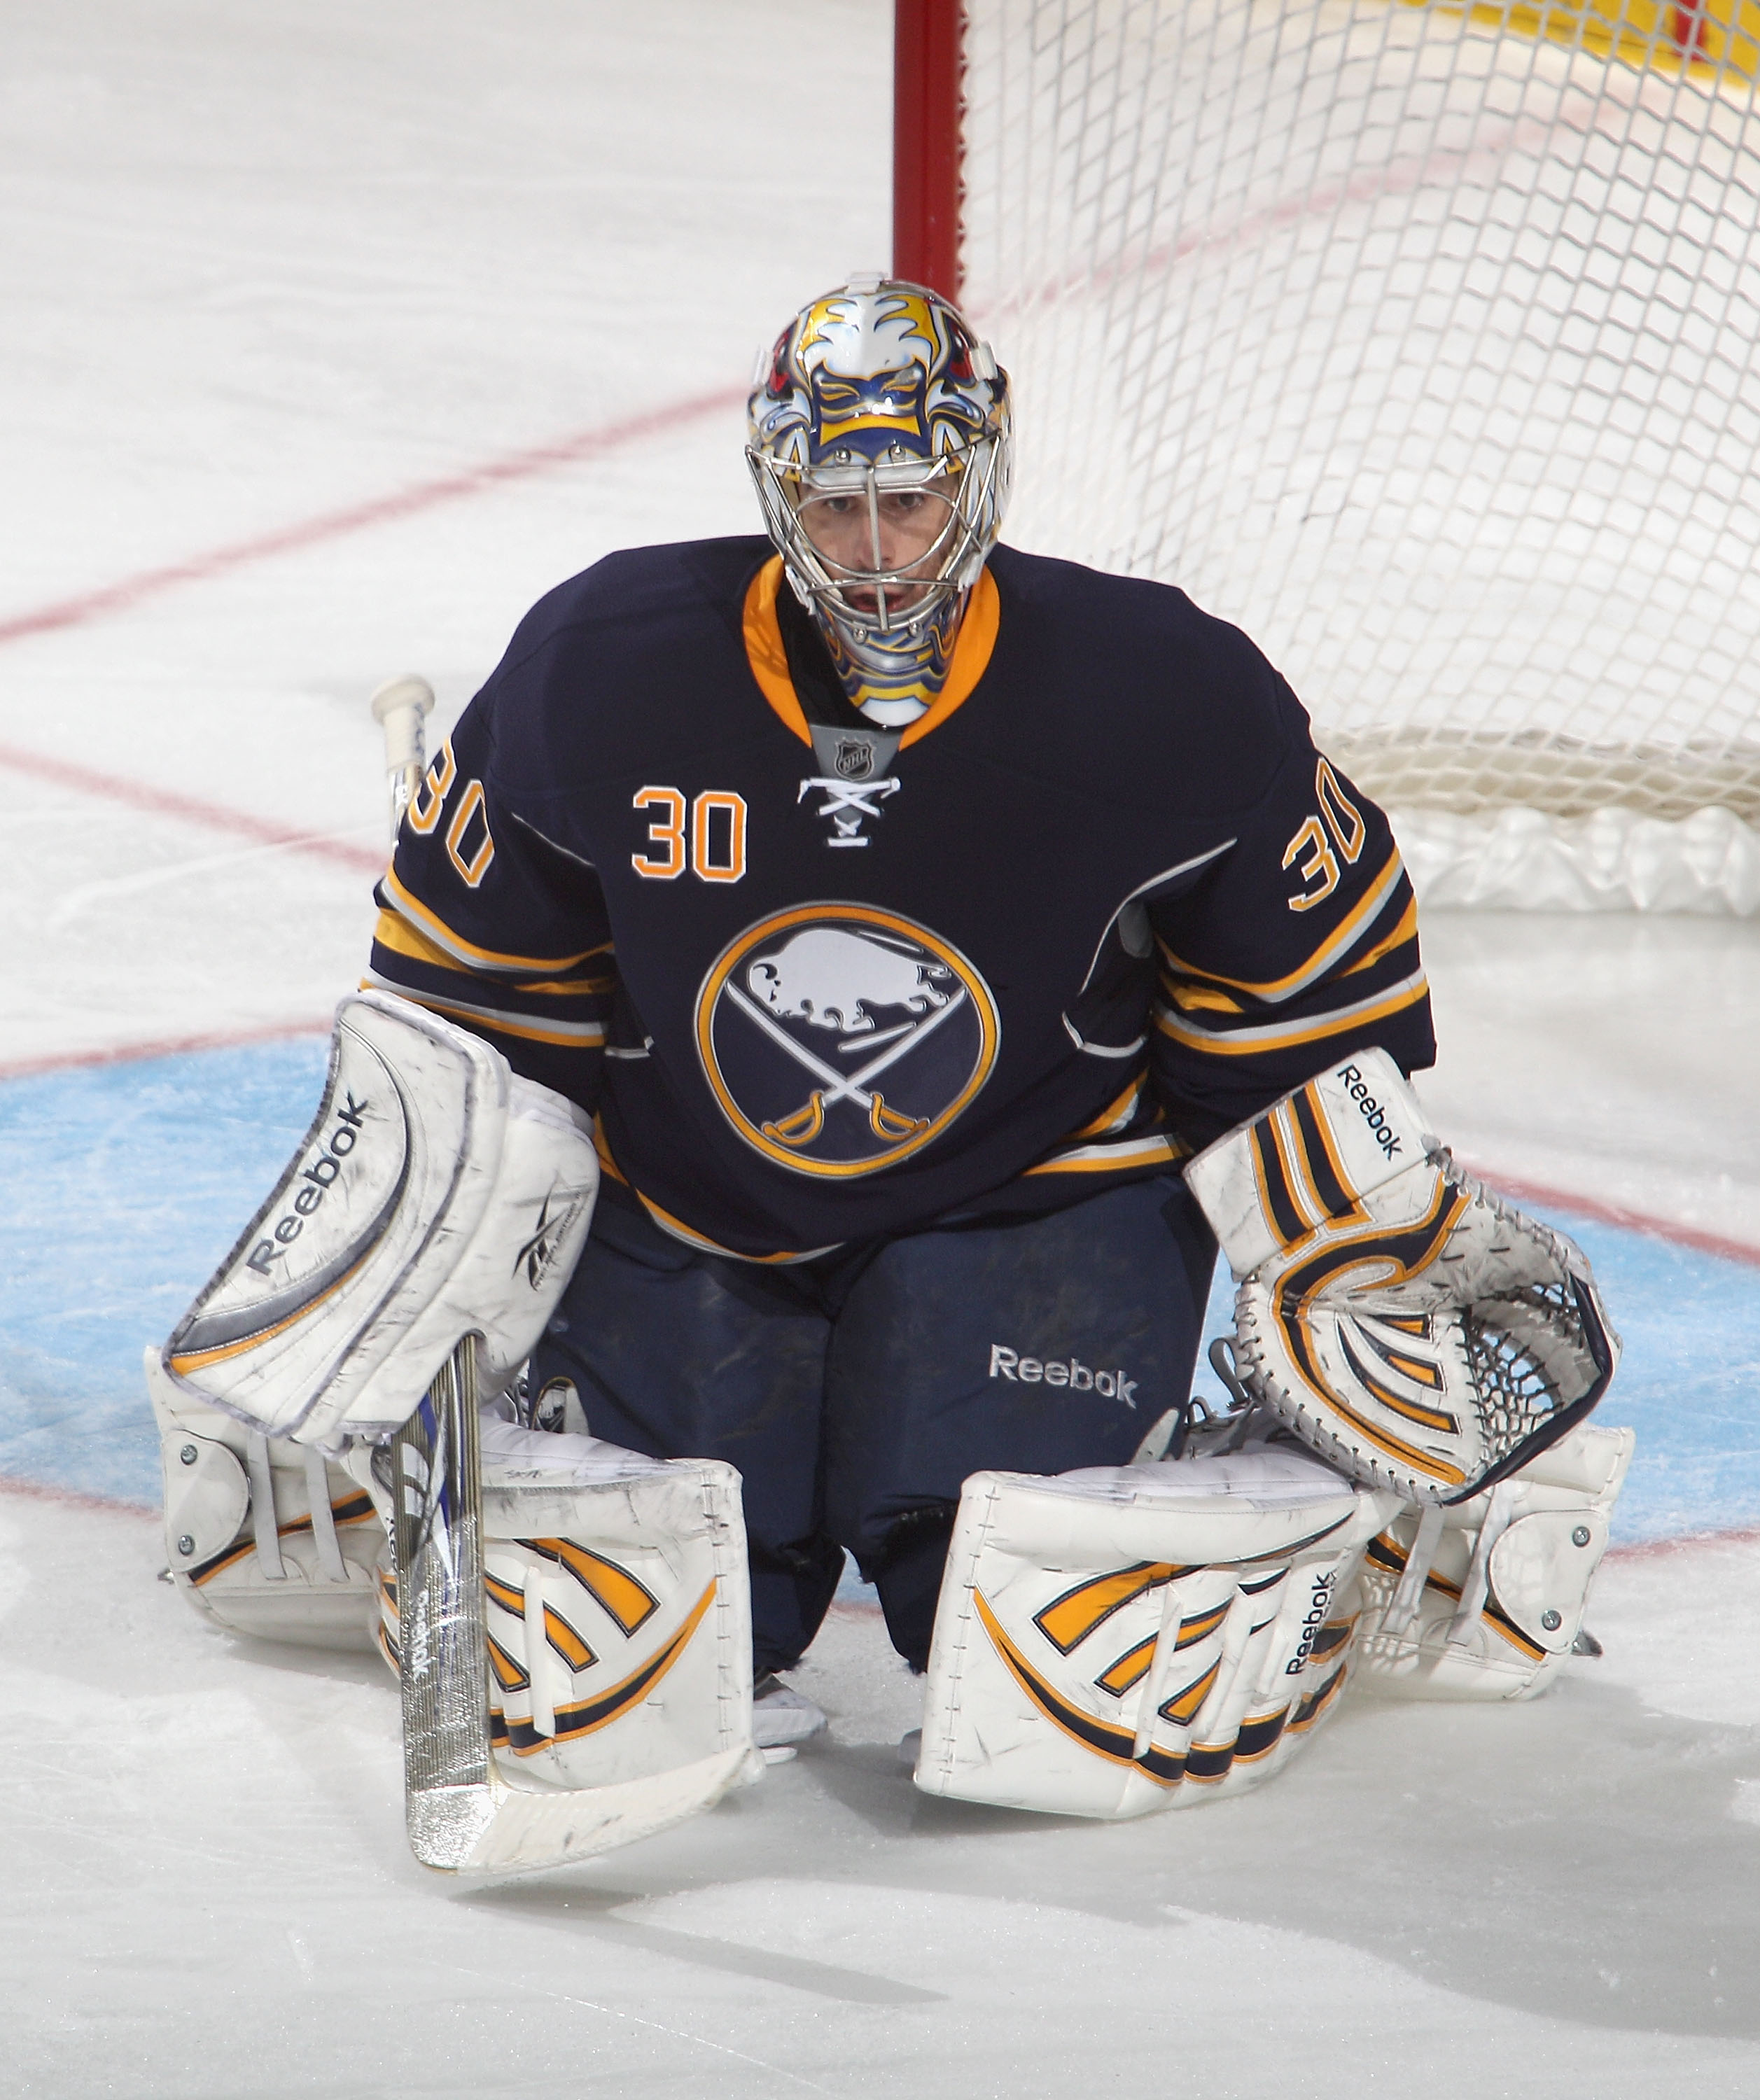 BUFFALO, NY - DECEMBER 23:  Ryan Miller #30 of the Buffalo Sabres plays goal against the Florida Panthers at HSBC Arena on December 23, 2010 in Buffalo, New York. Florida won 4-3.  (Photo by Rick Stewart/Getty Images)